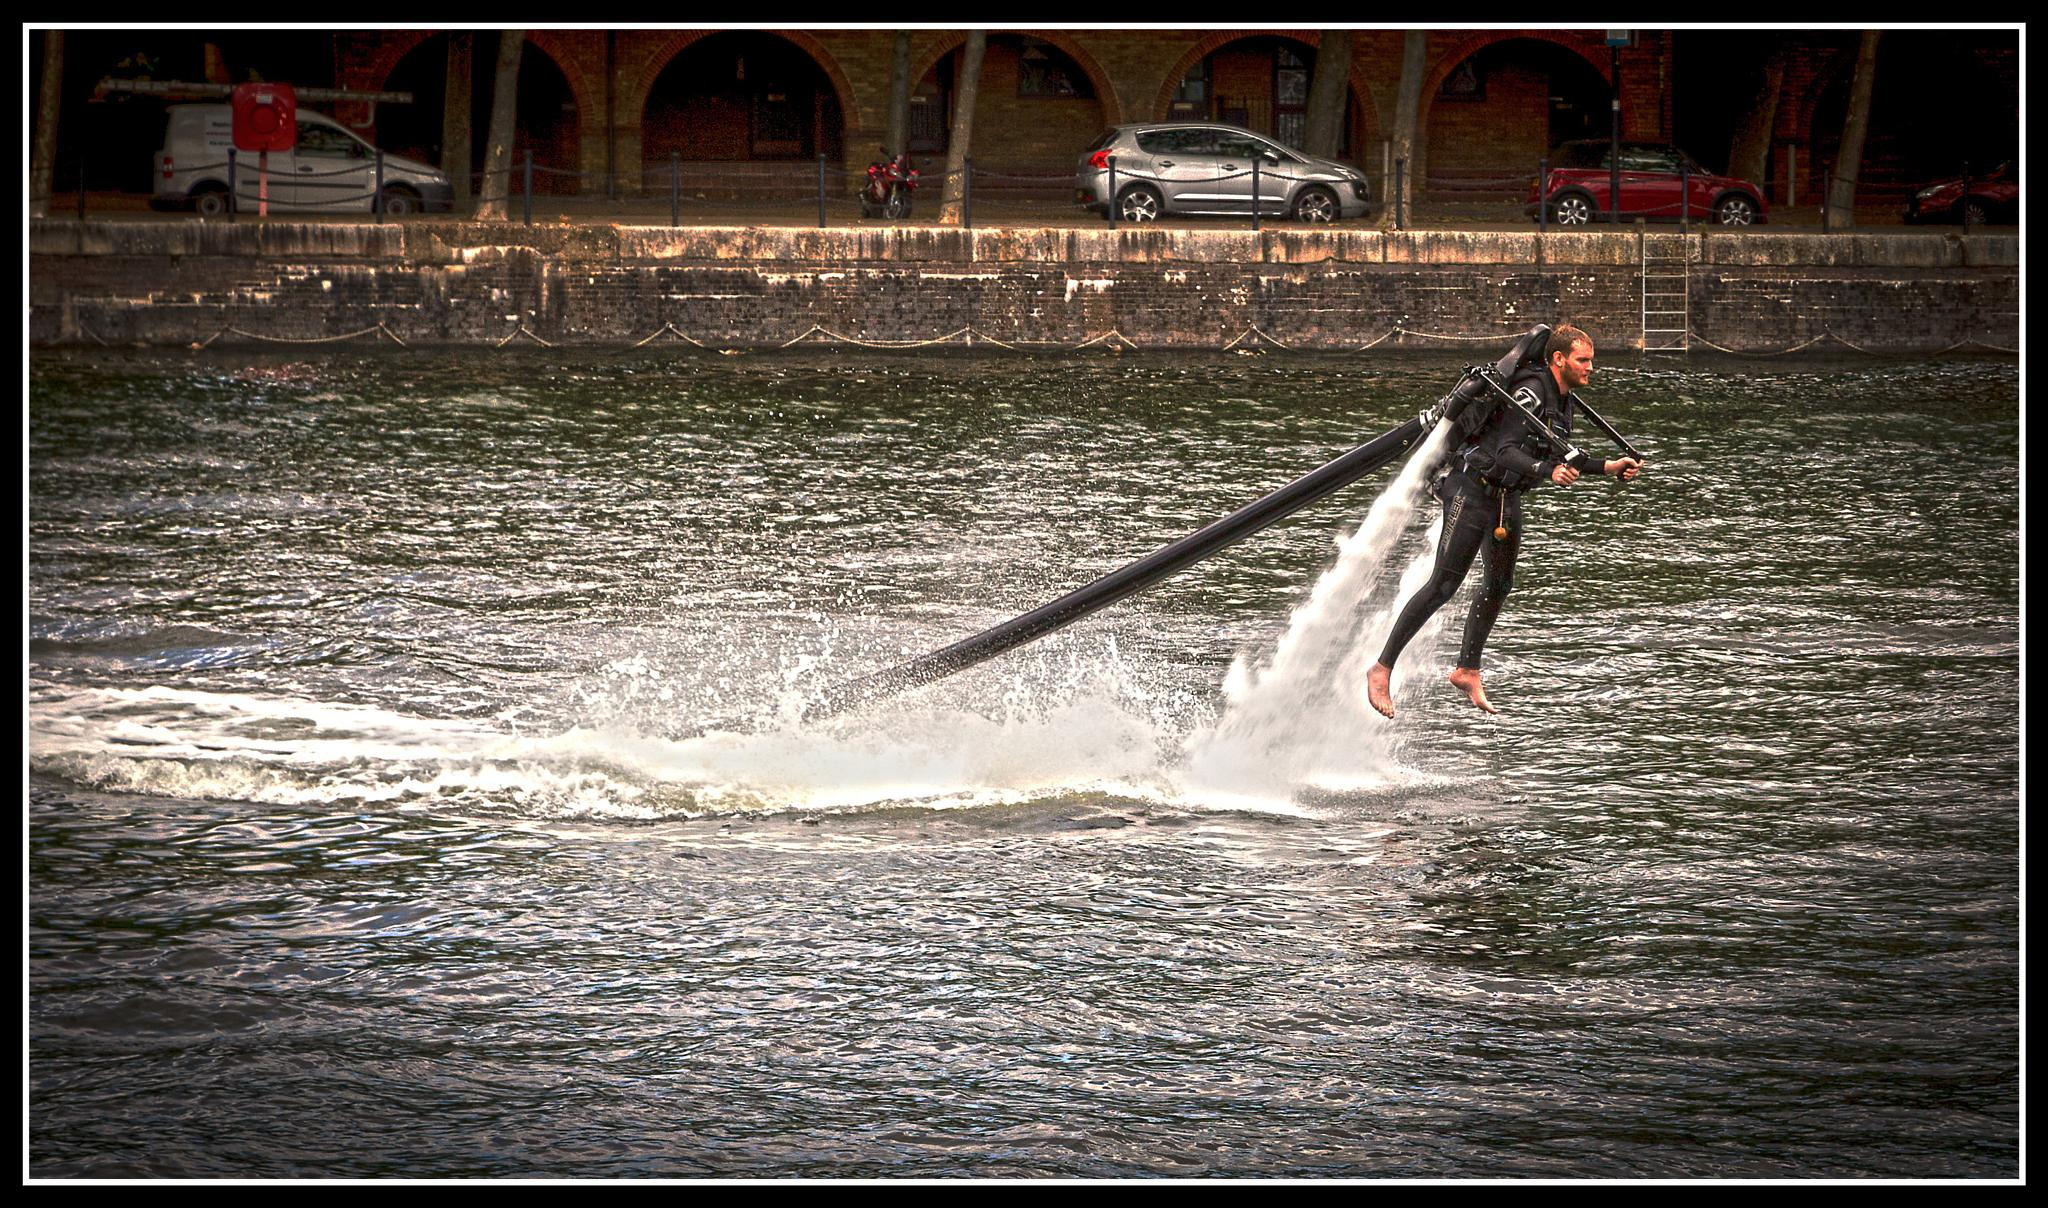 Water jet pack on Greenland Dock by wendy.nowak